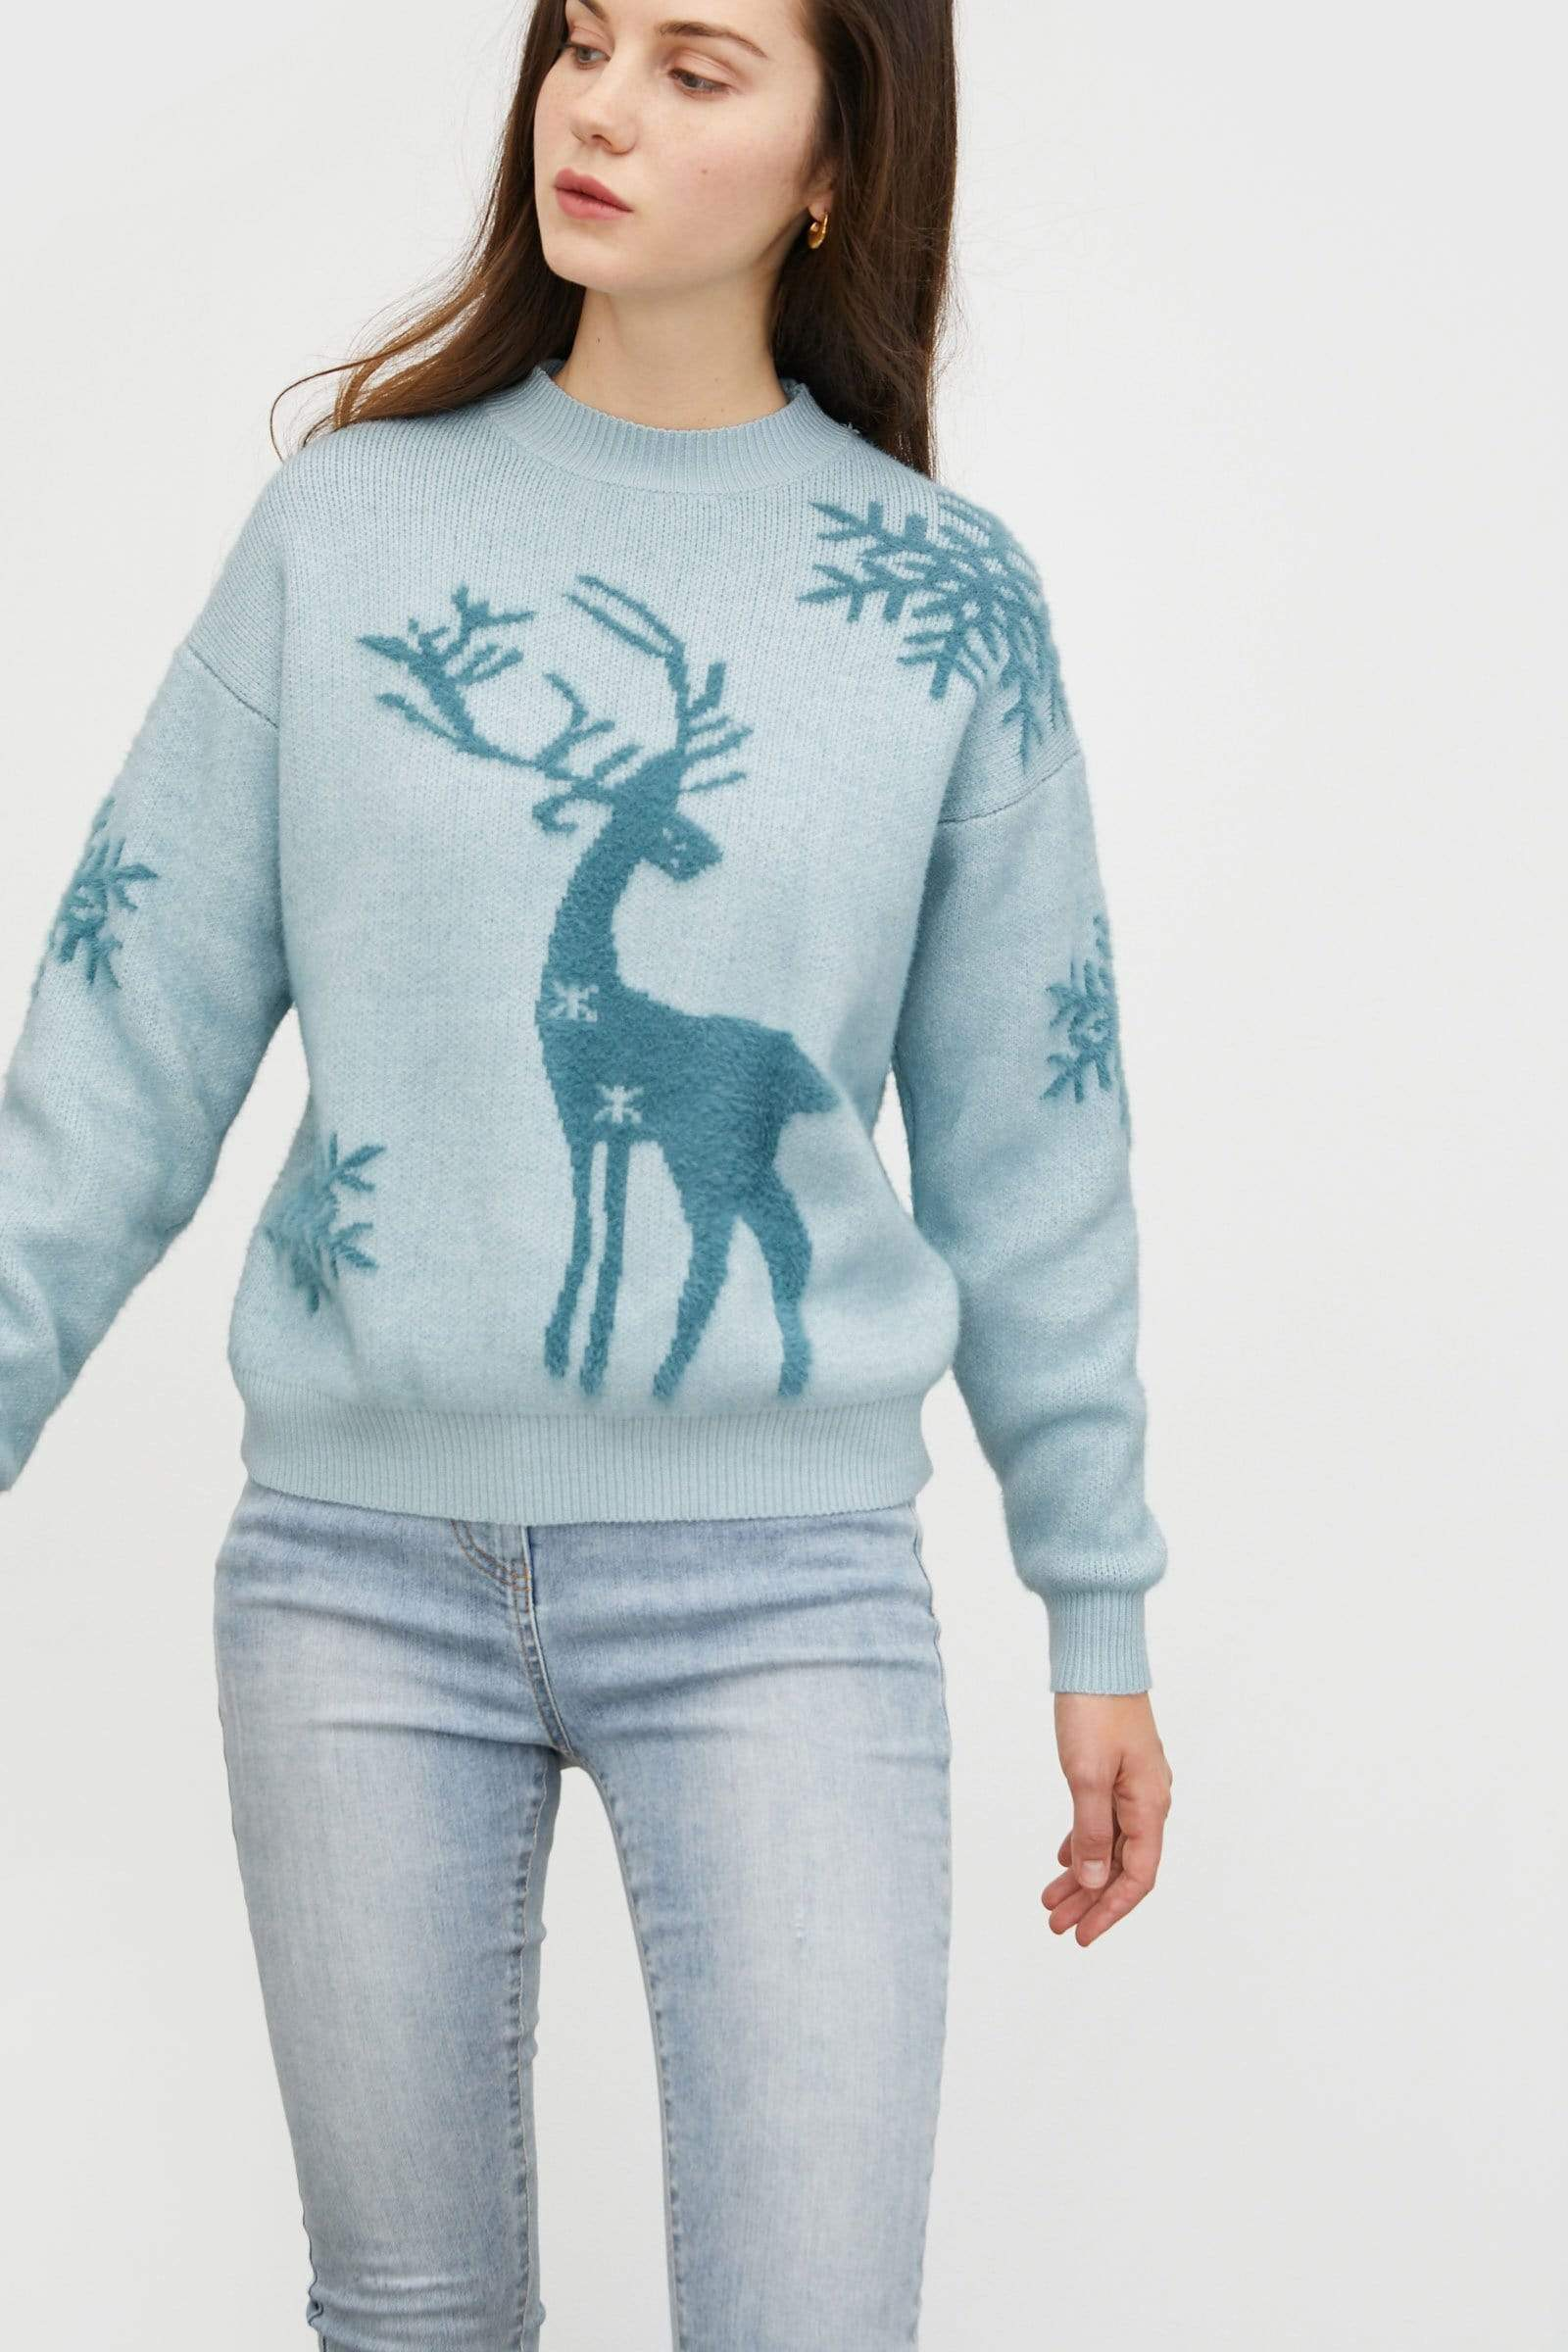 Holiday Buddy Periwinkle Sweater